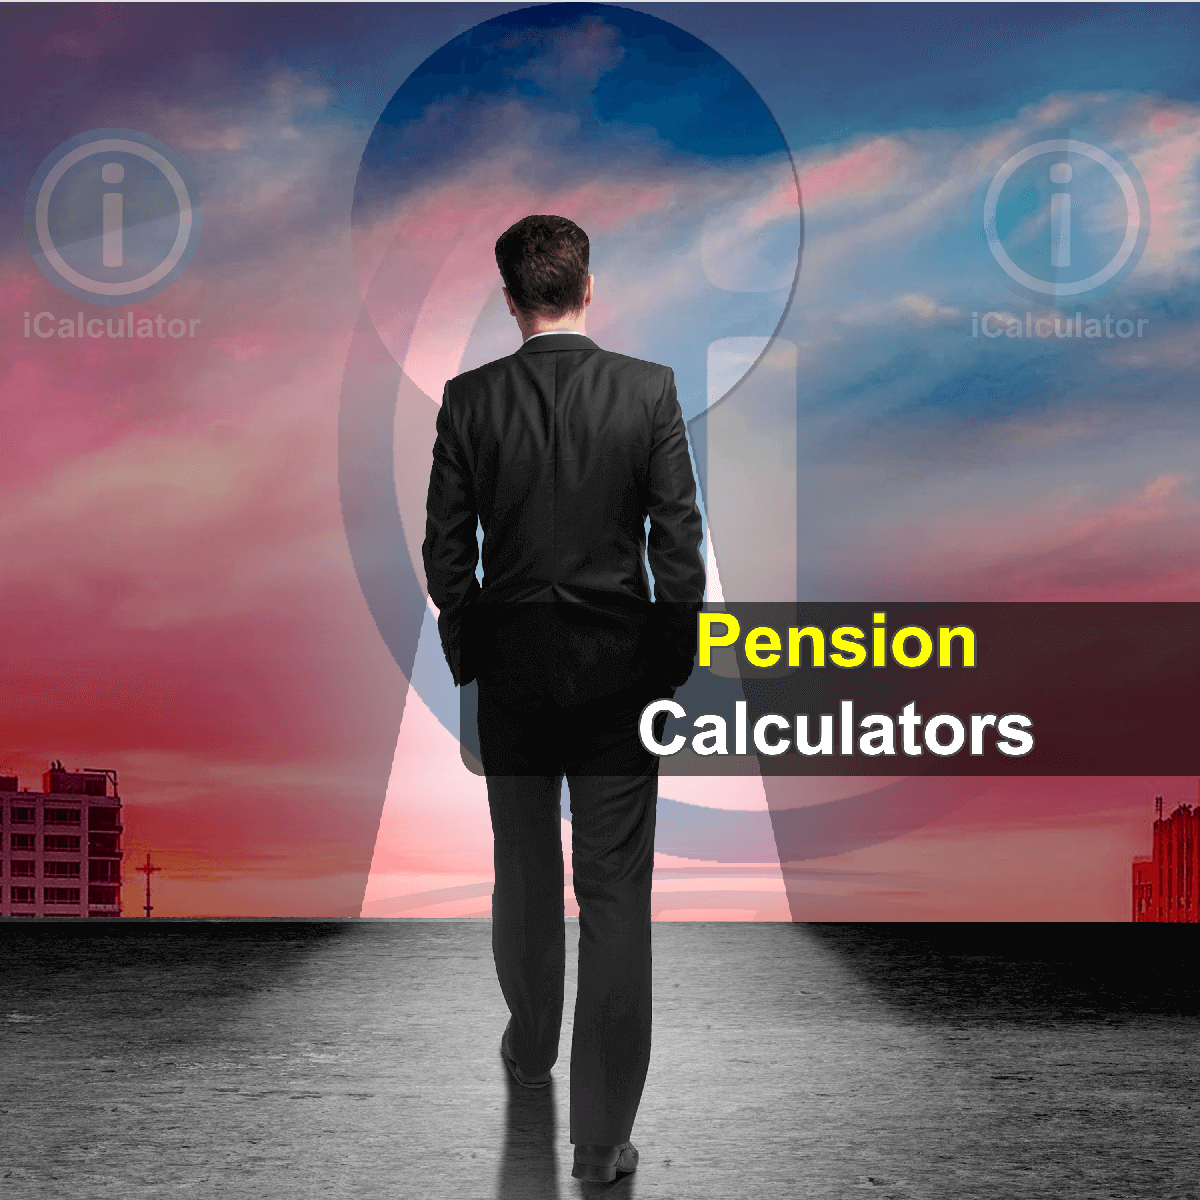 Pension Calculators. This image shows an employee considering the merits of different pension providers and calculating the investment risk and return on investment using the pension calculators provided by iCalculator.